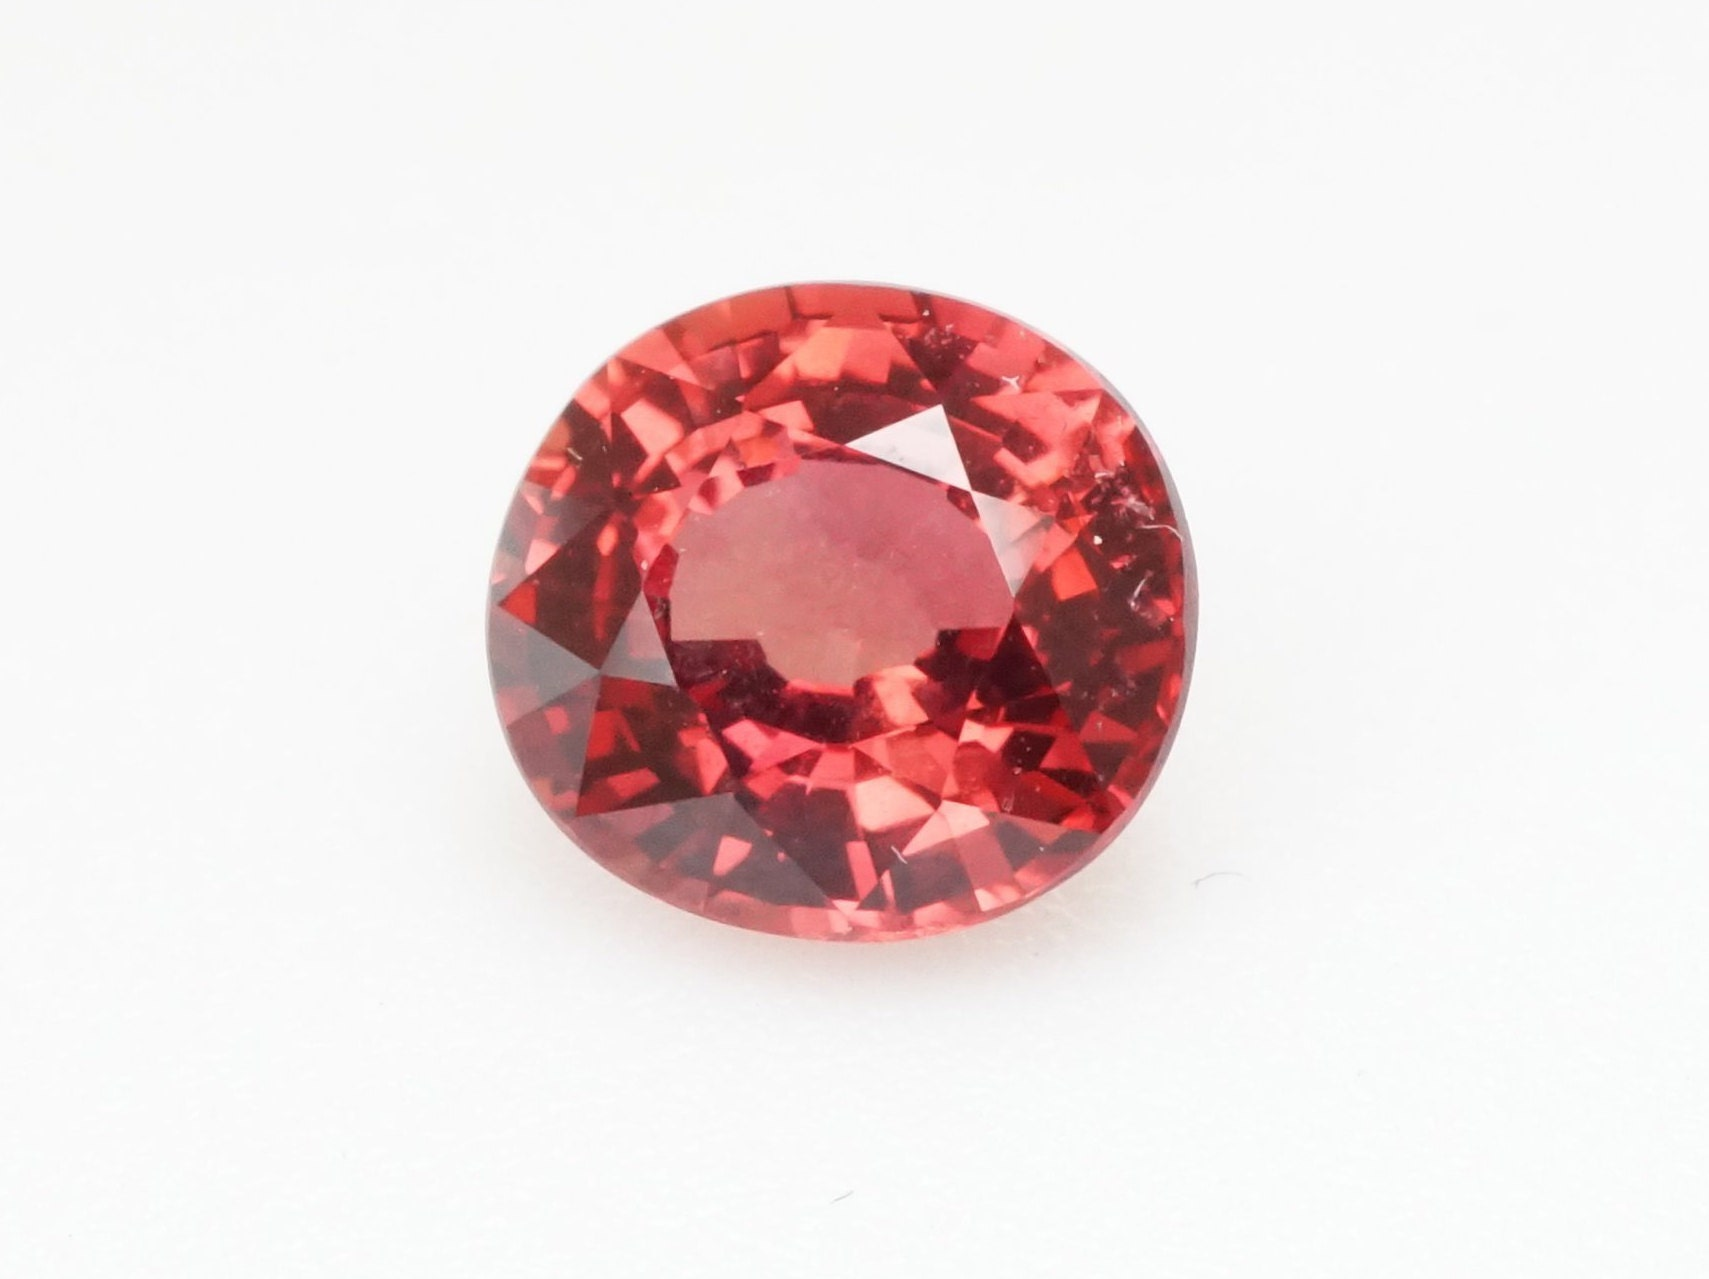 Natural Natural Natural Padparadcha Sapphire Loose, Custom Oval Engagement Wedding Ring, 1.31 cts Red Gemstones, September Birthstone Ring Personalized Gift 0f5674